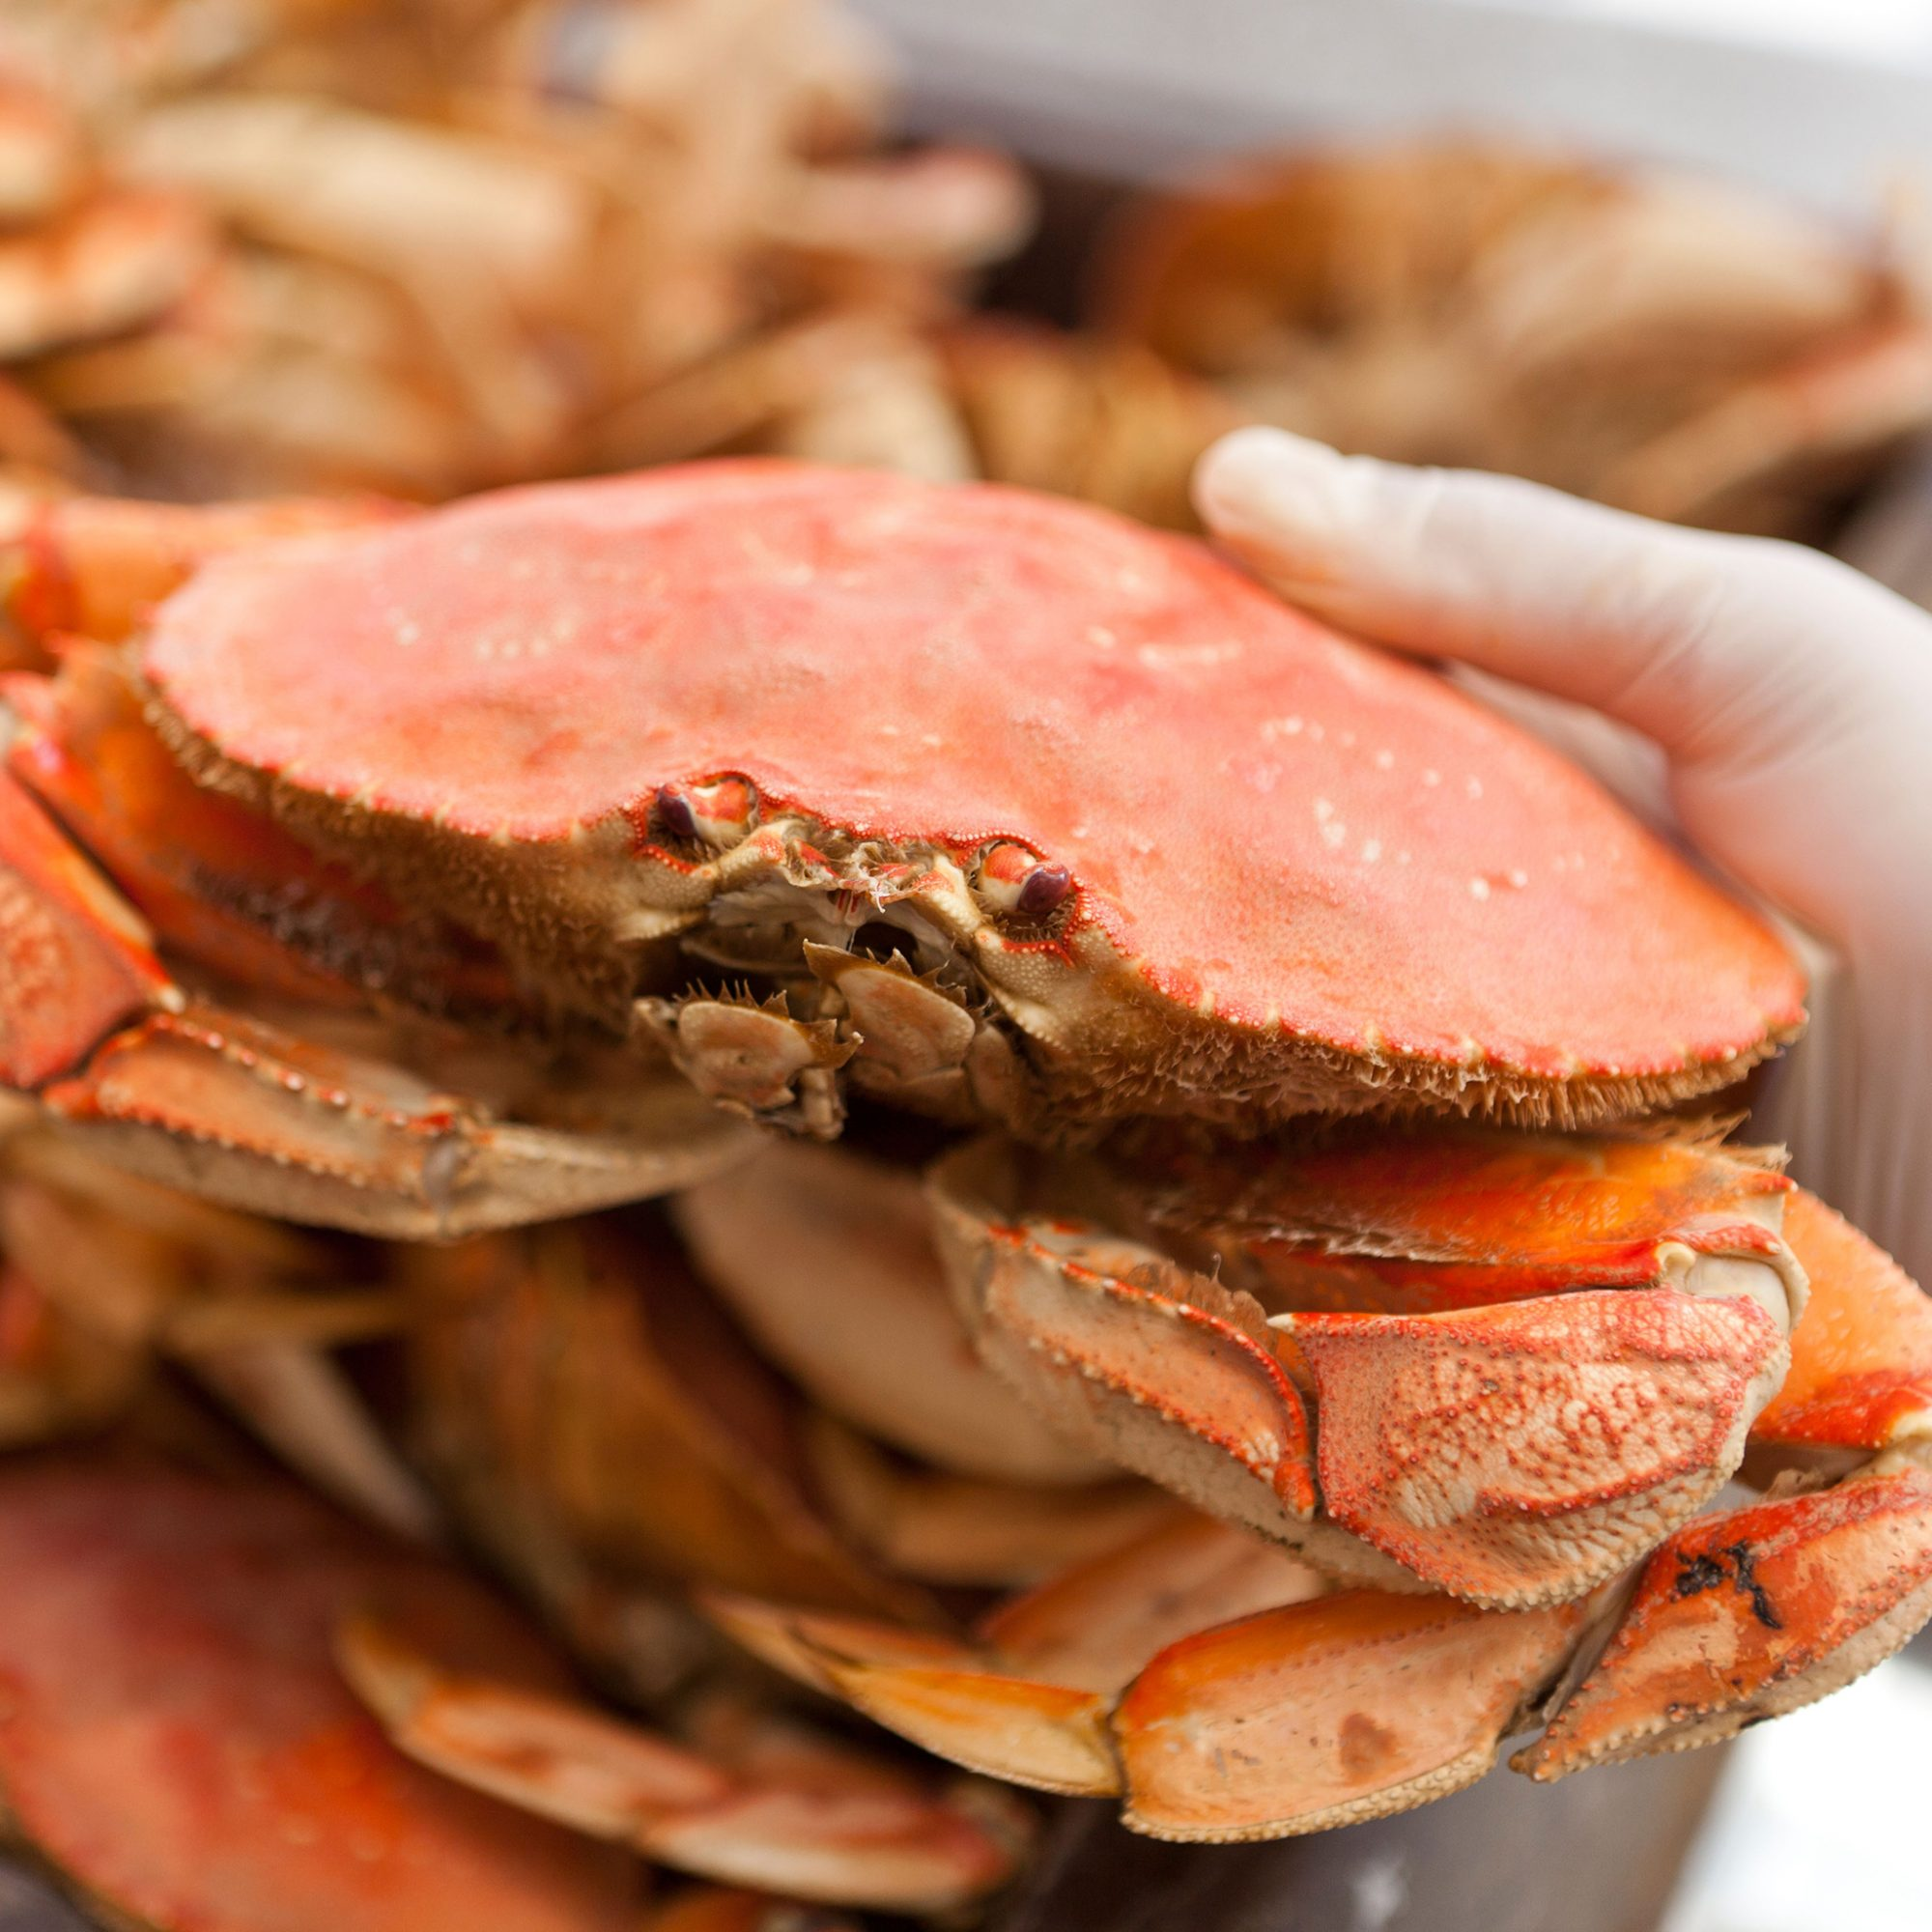 FWX DUNGENESS CRAB ISSUE